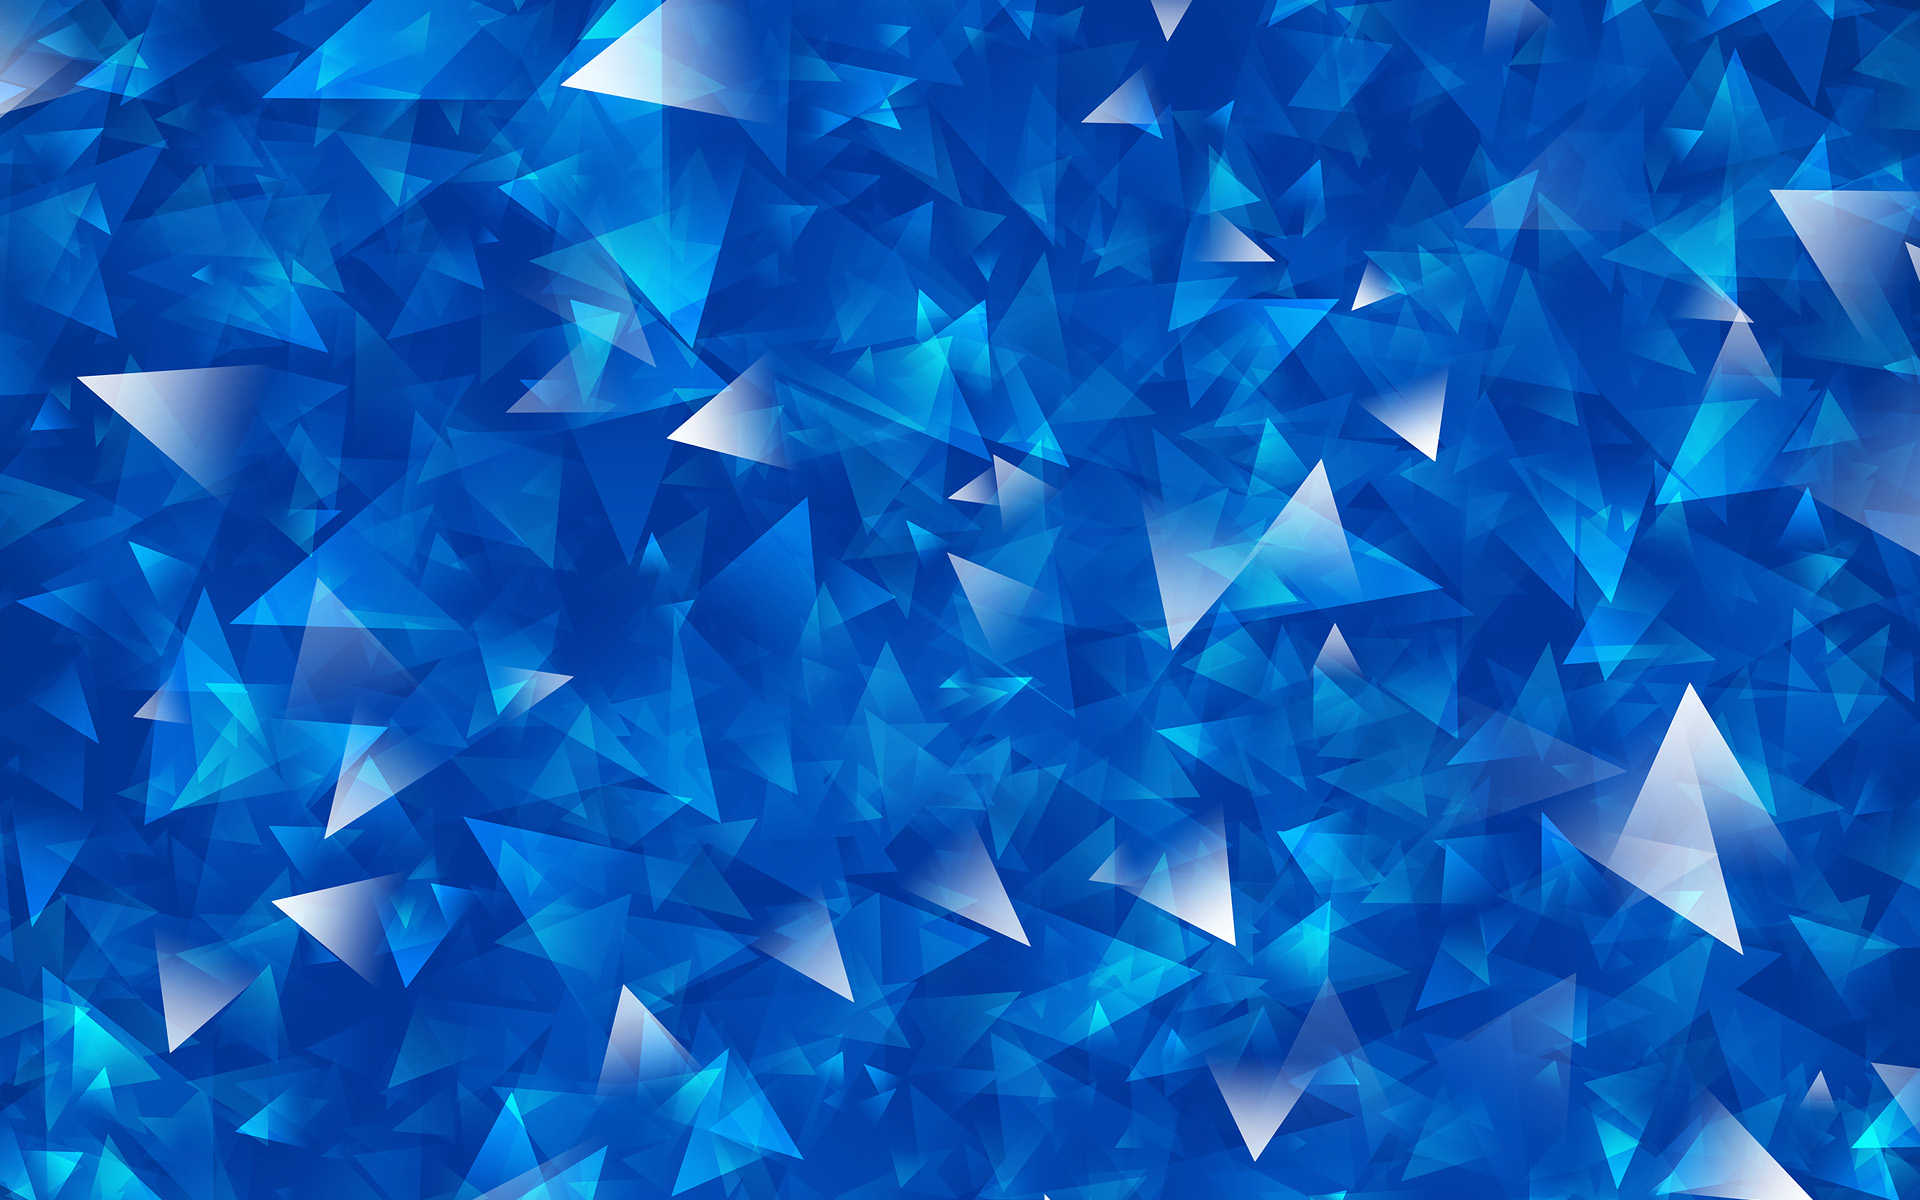 Crystal Wallpaper Free Download